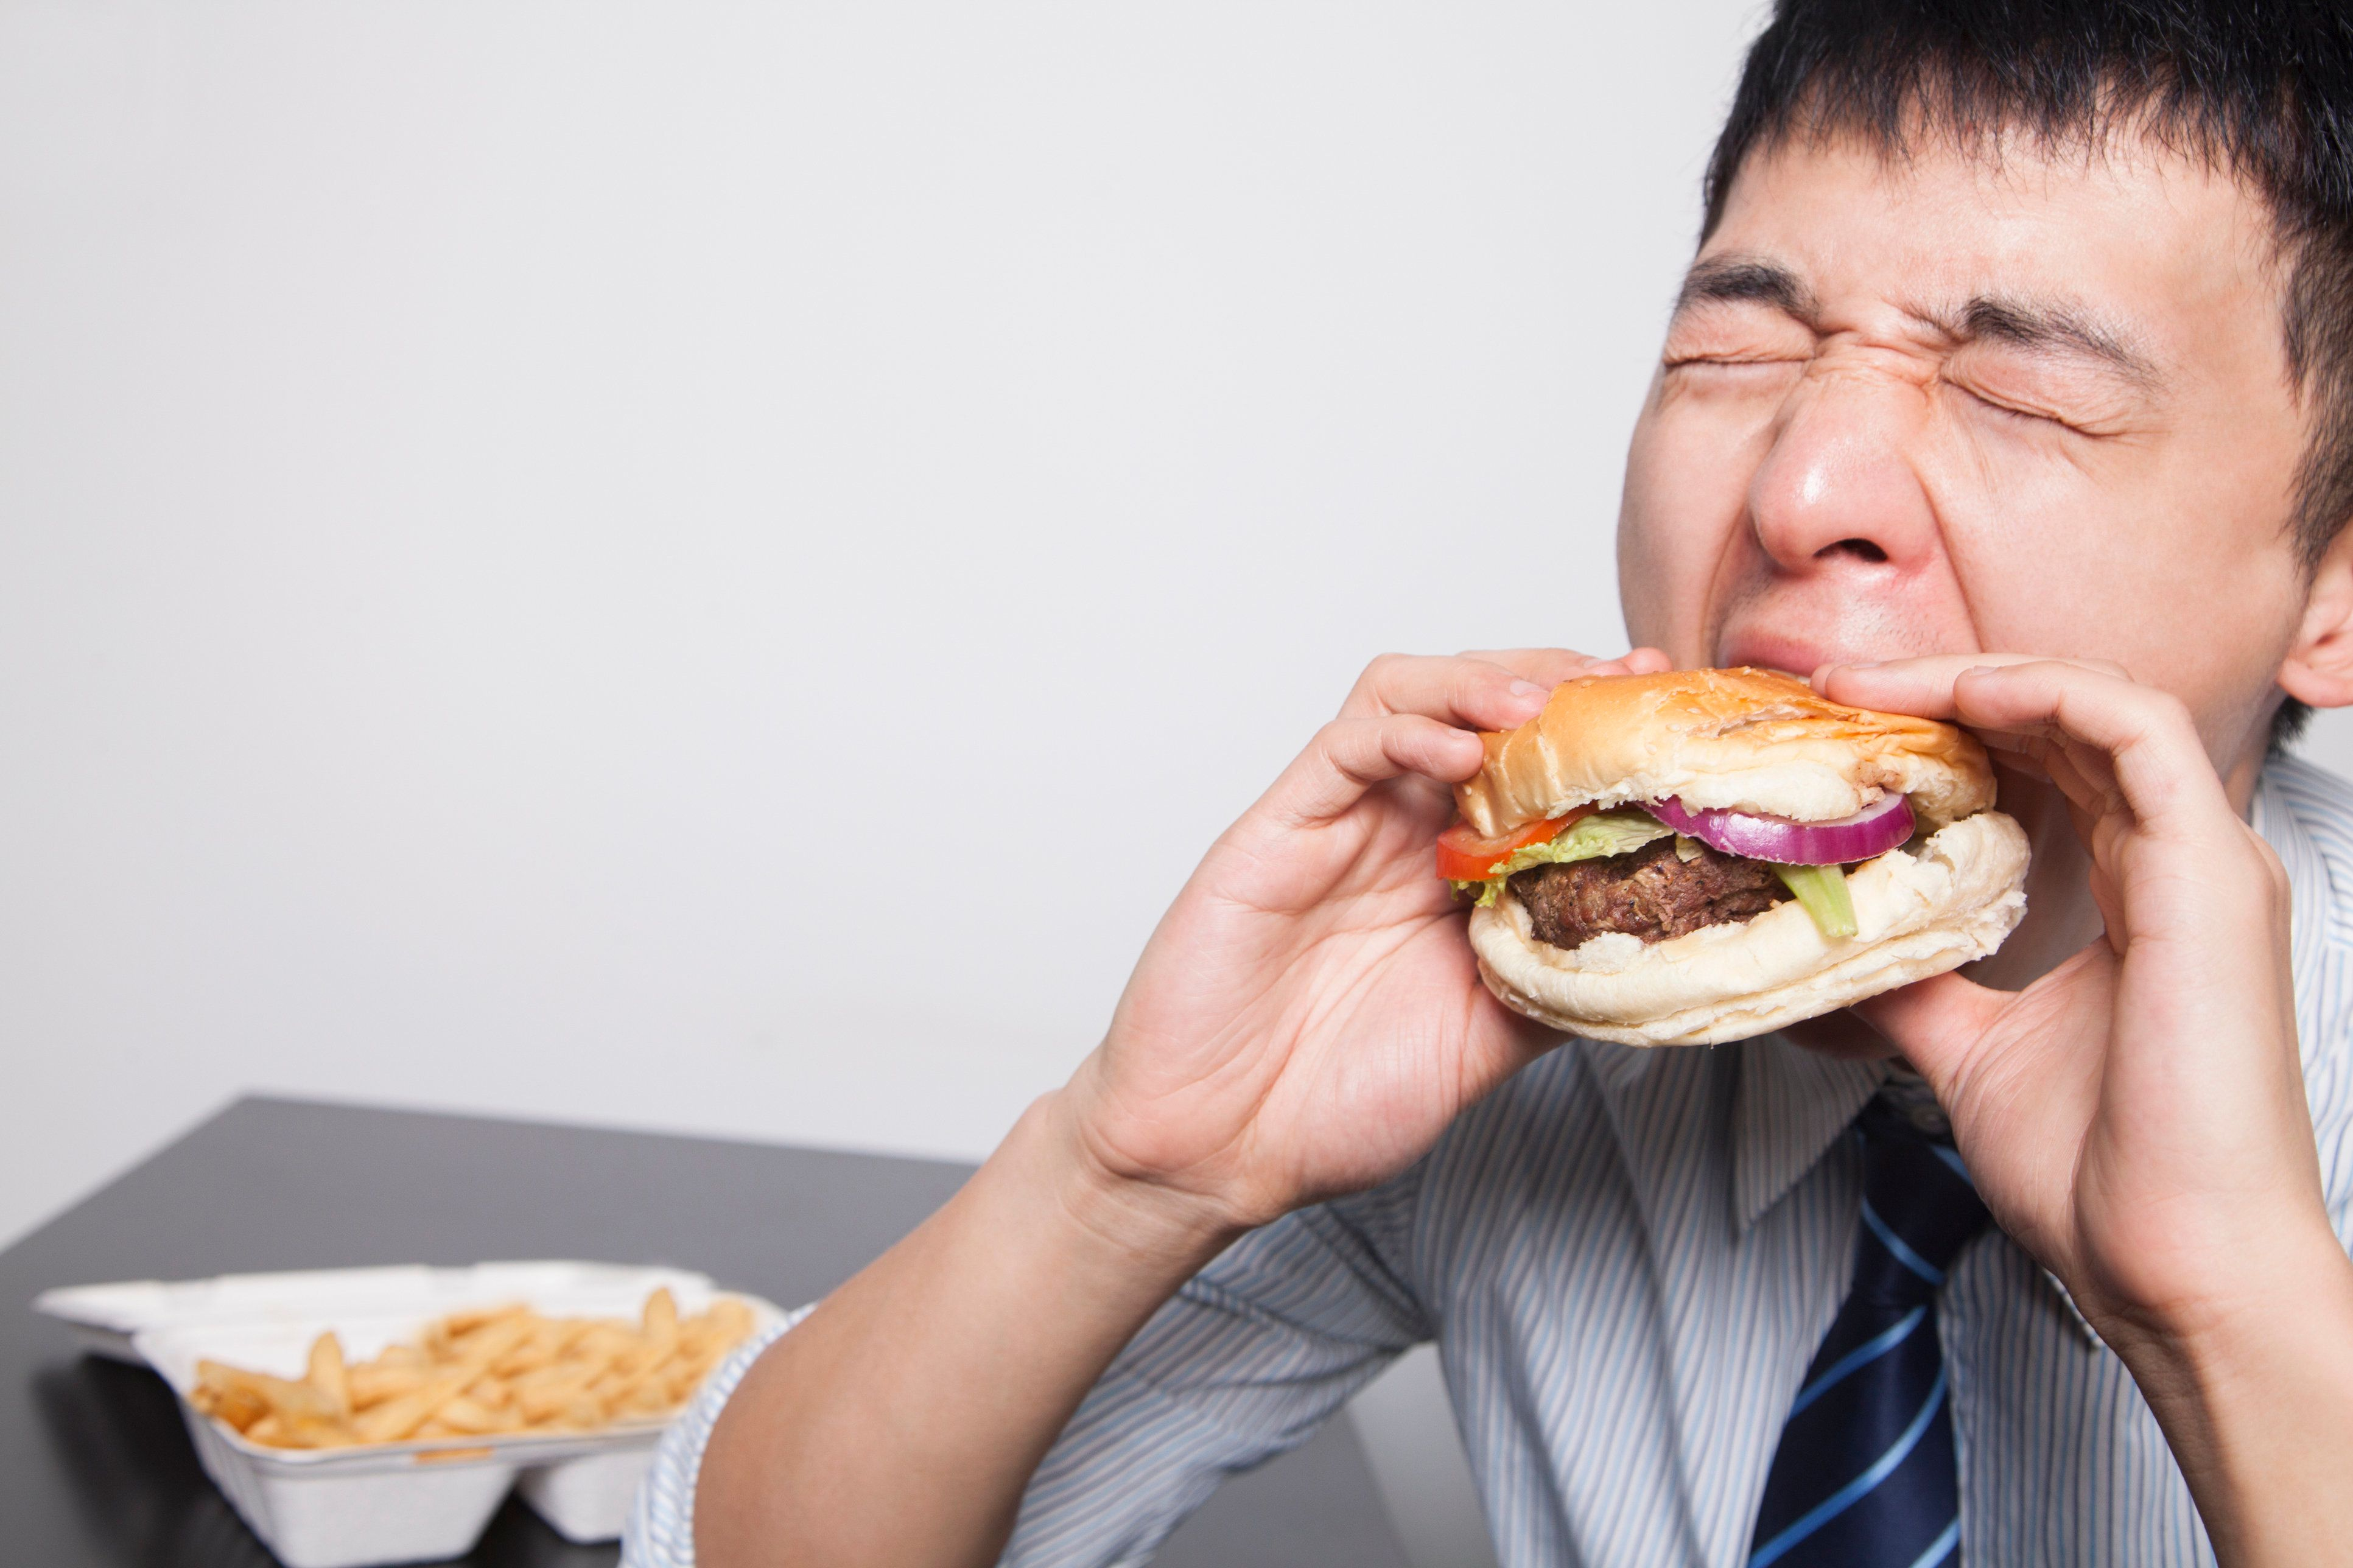 Being Overtired Is An Easy Way To Eat 400 More Calories A